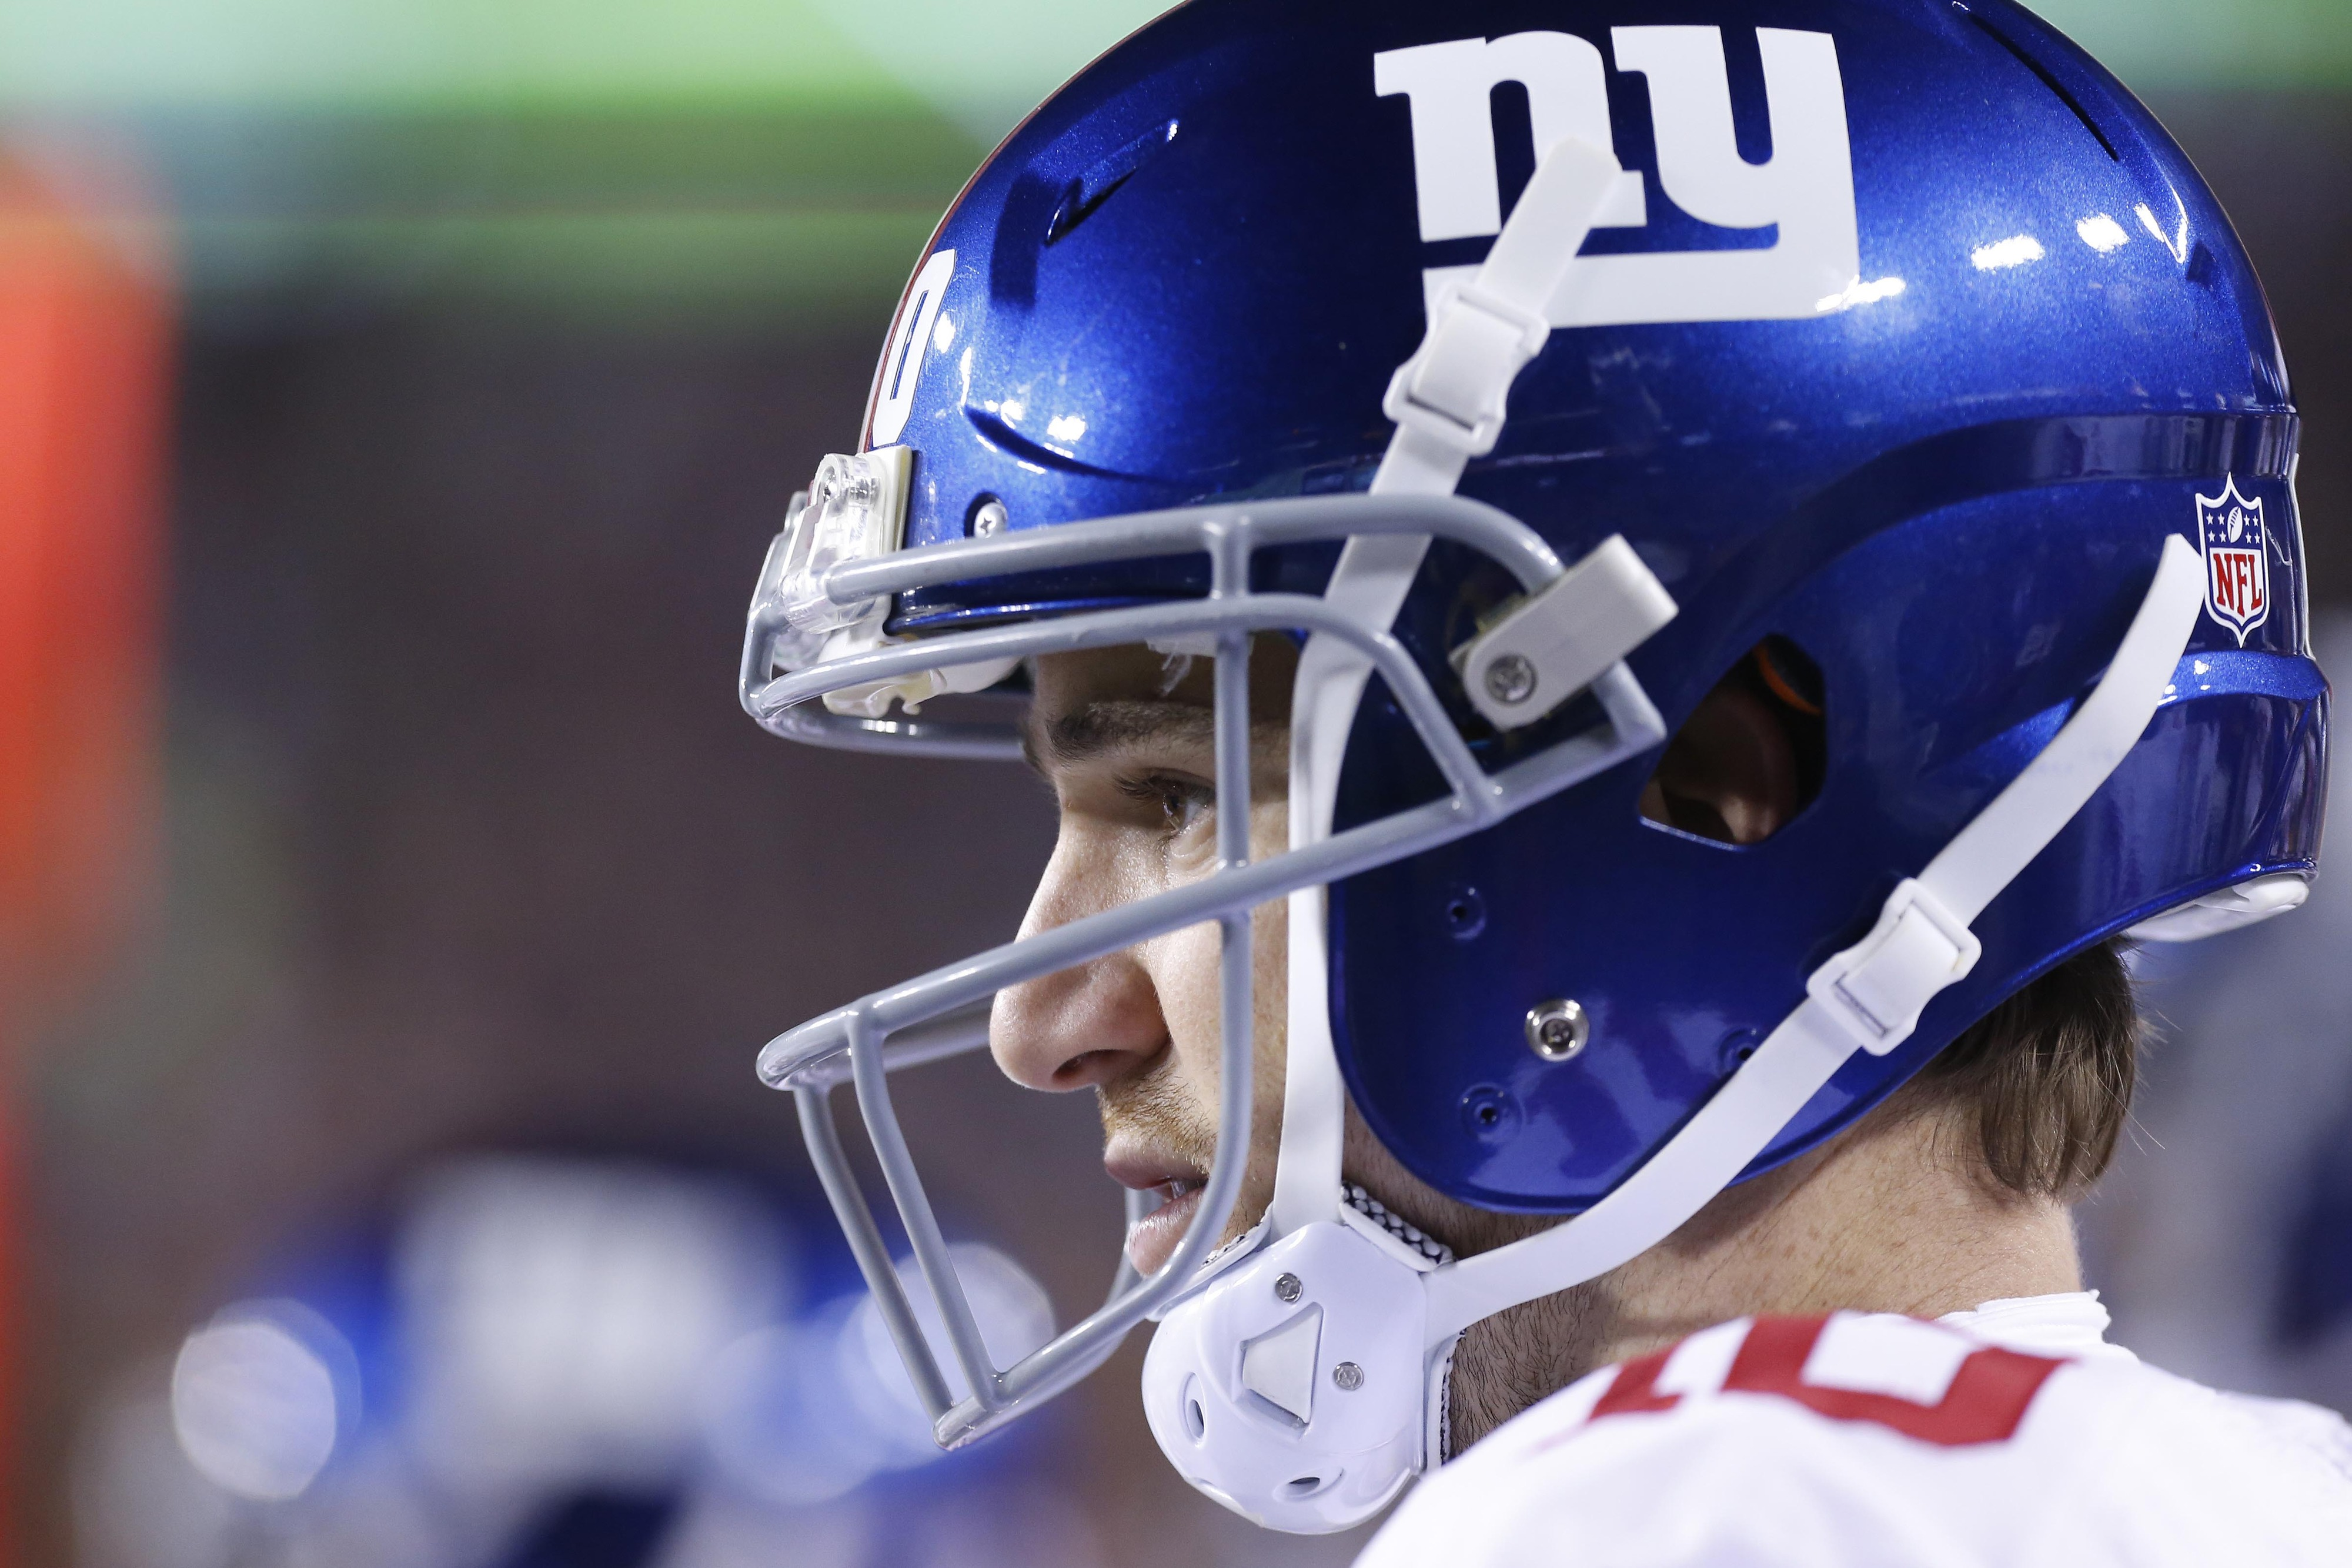 Giants quarterback Eli Manning heads to San Diego to face the team that originally drafted him before trading him to New York for its current quarterback Philip Rivers